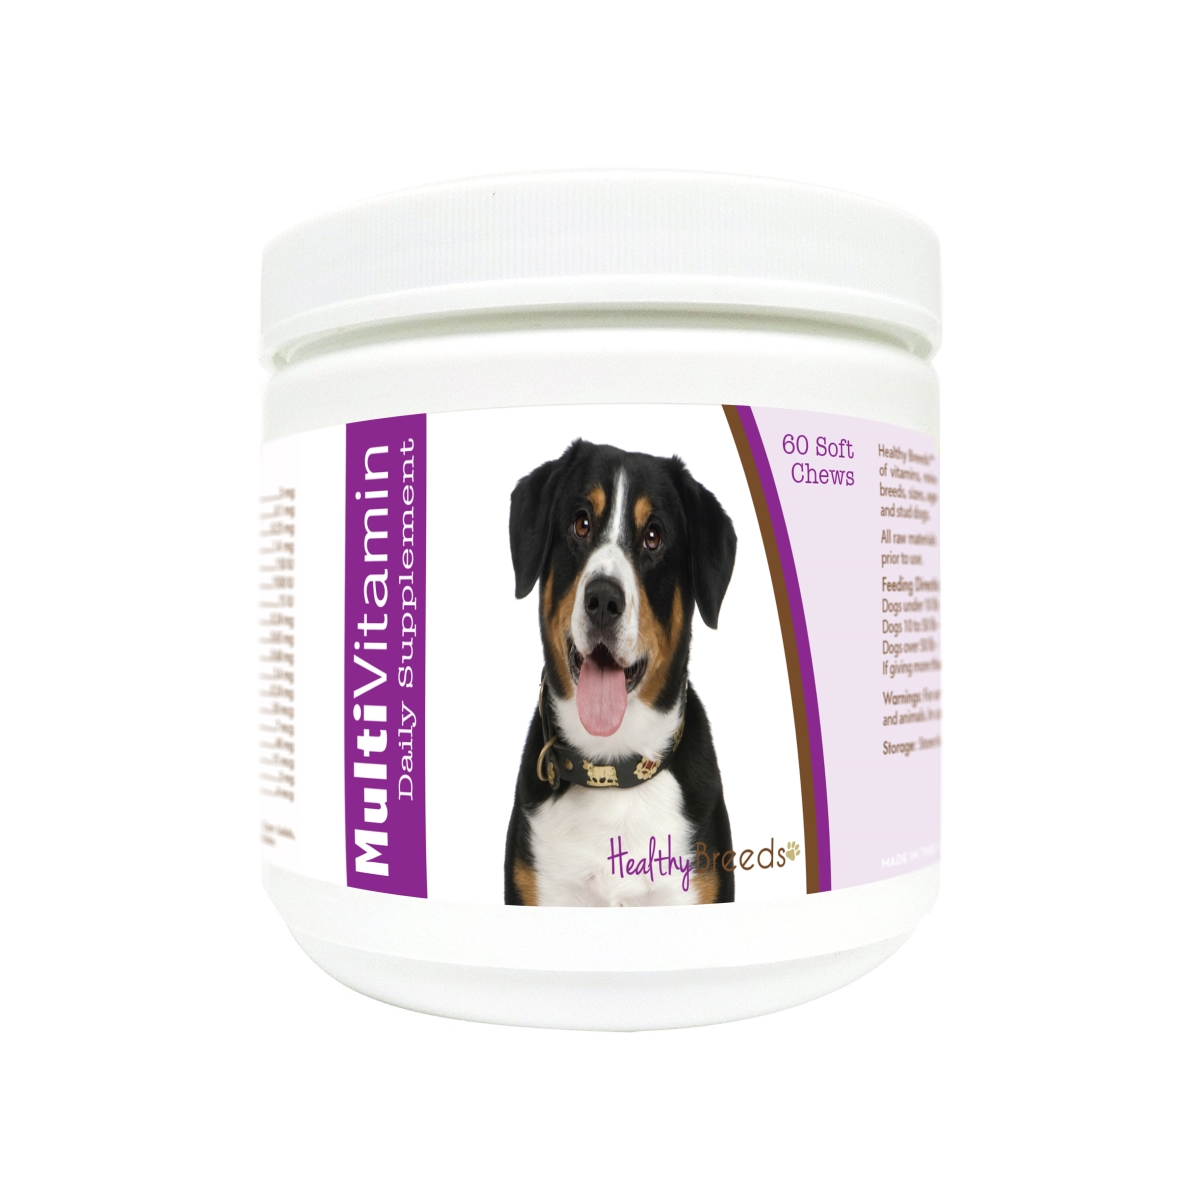 Healthy Breeds 840235180098 Entlebucher Mountain Dog Multi-Vitamin Soft Chews - 60 Count